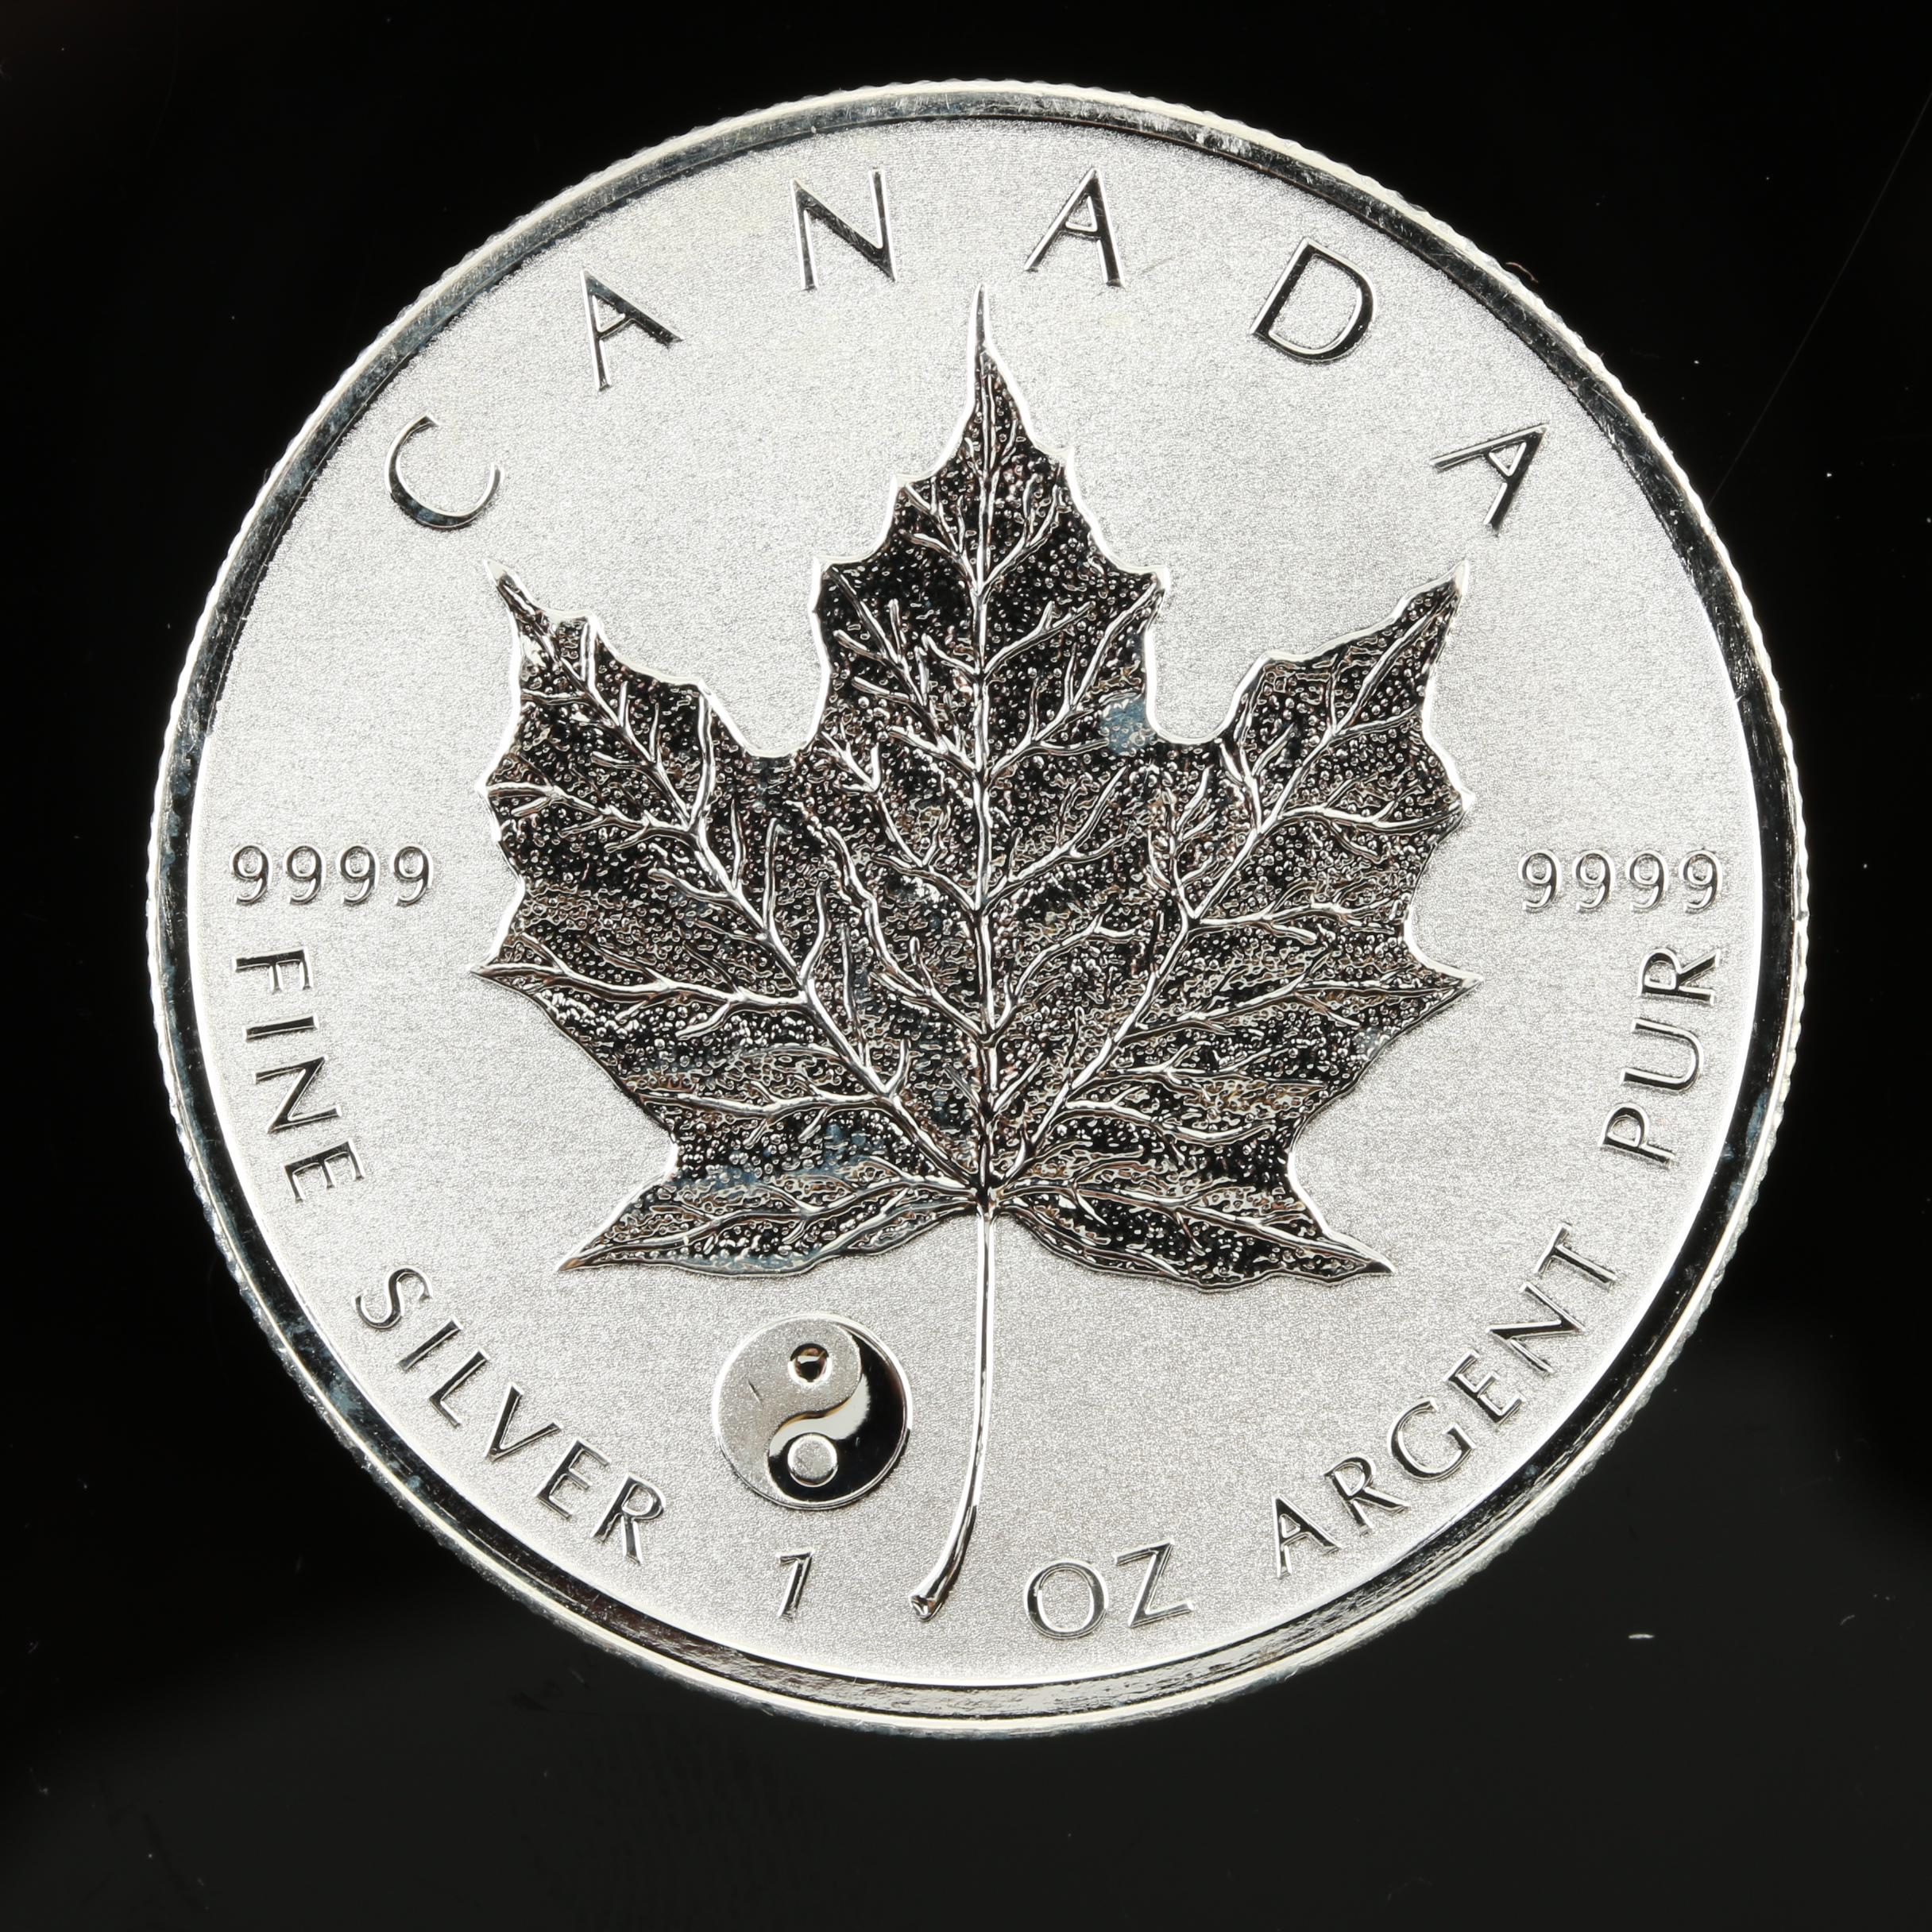 2016 1 oz YIN YANG Privy Canadian Silver Maple Leaf Reverse Proof Coin IN STOCK